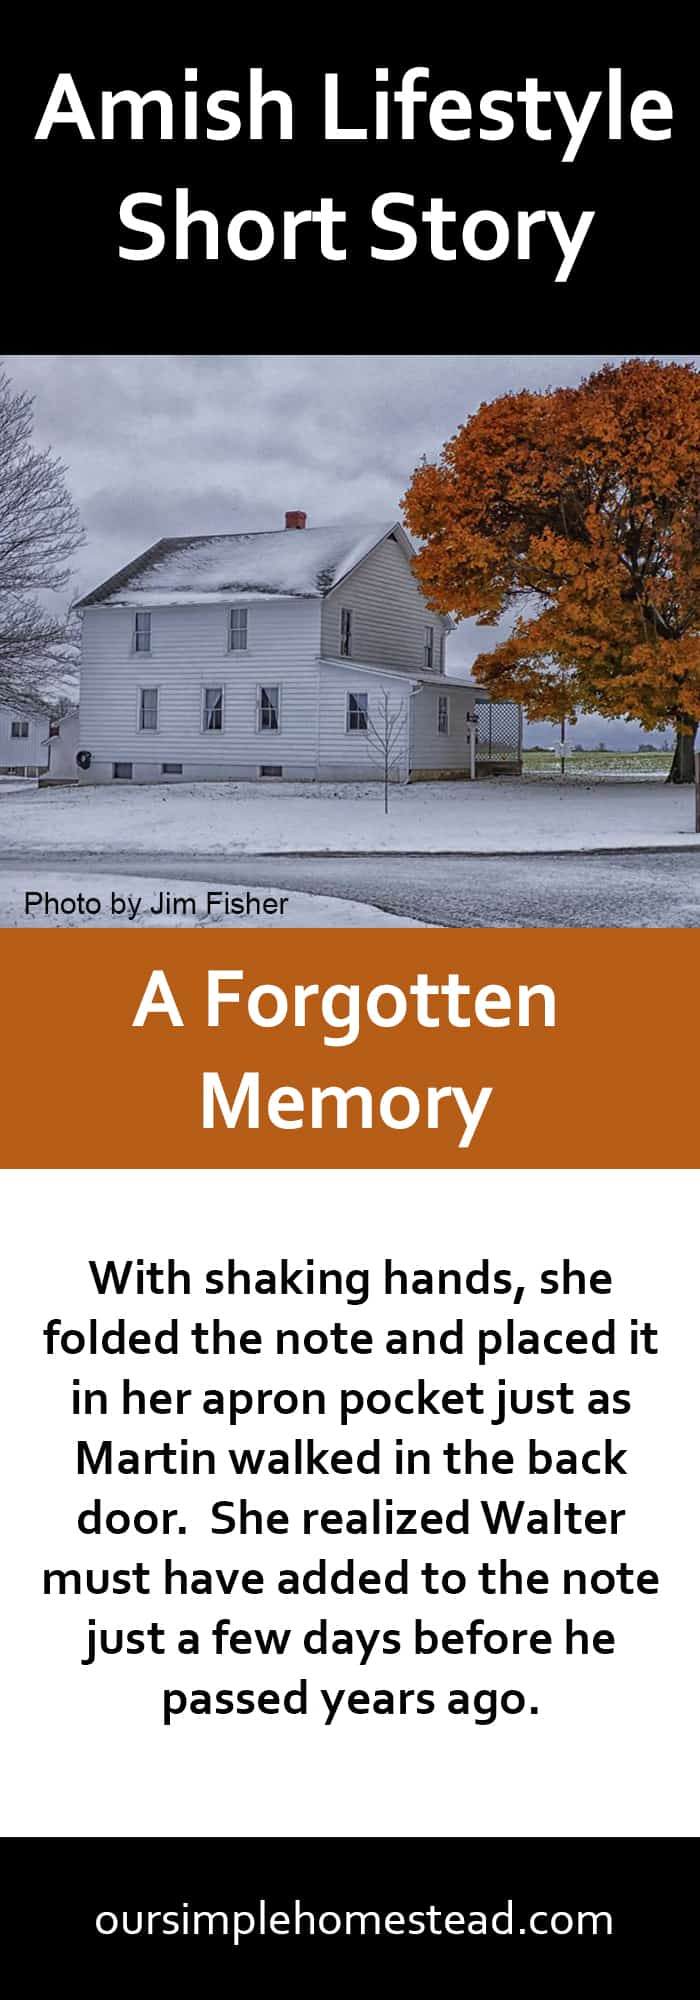 Amish Lifestyle - A Forgotten Memory